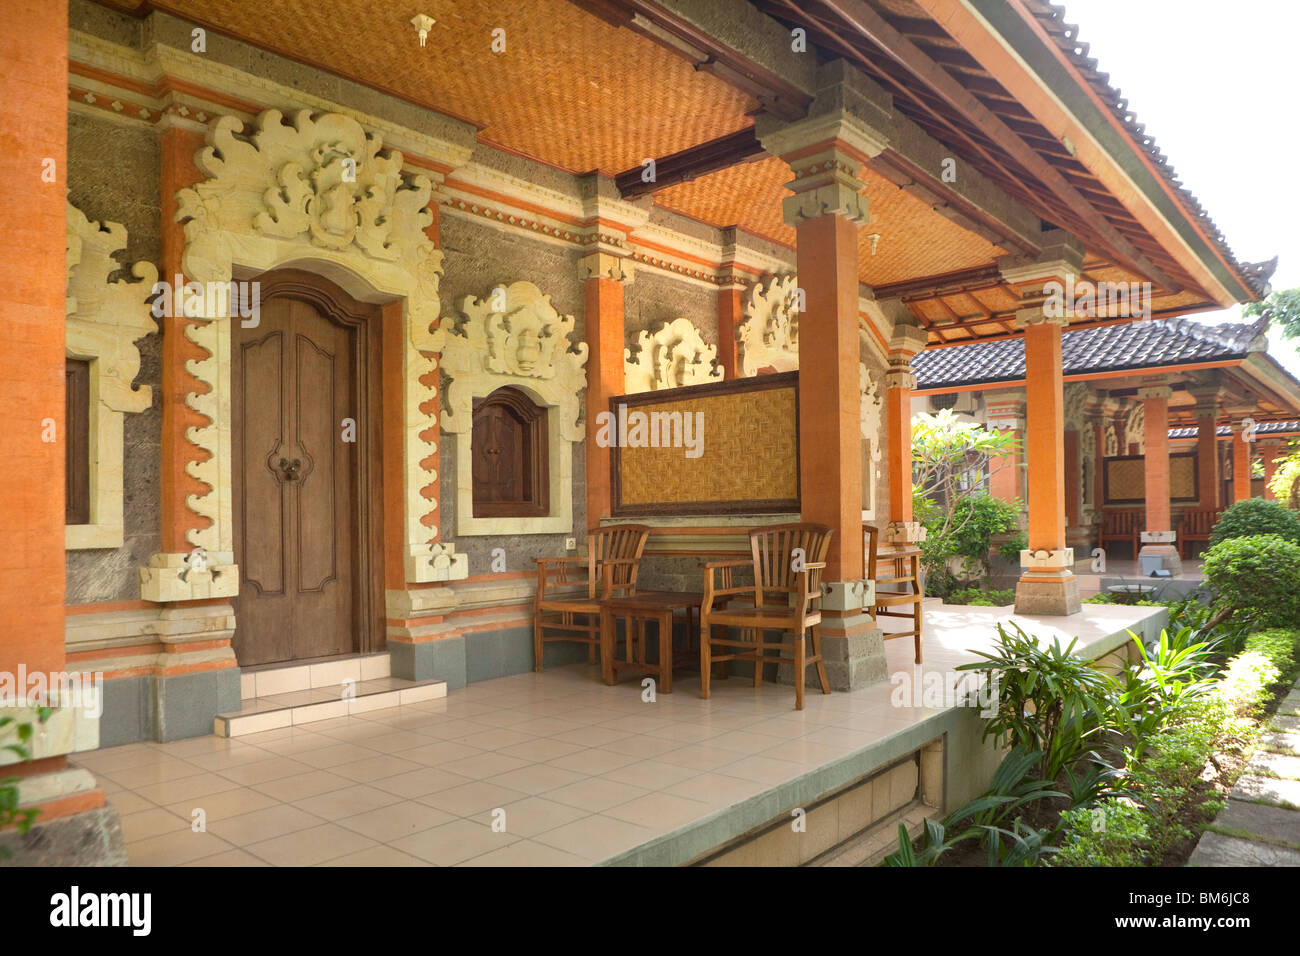 Traditional guesthouse at Bali, Indonesia - Stock Image